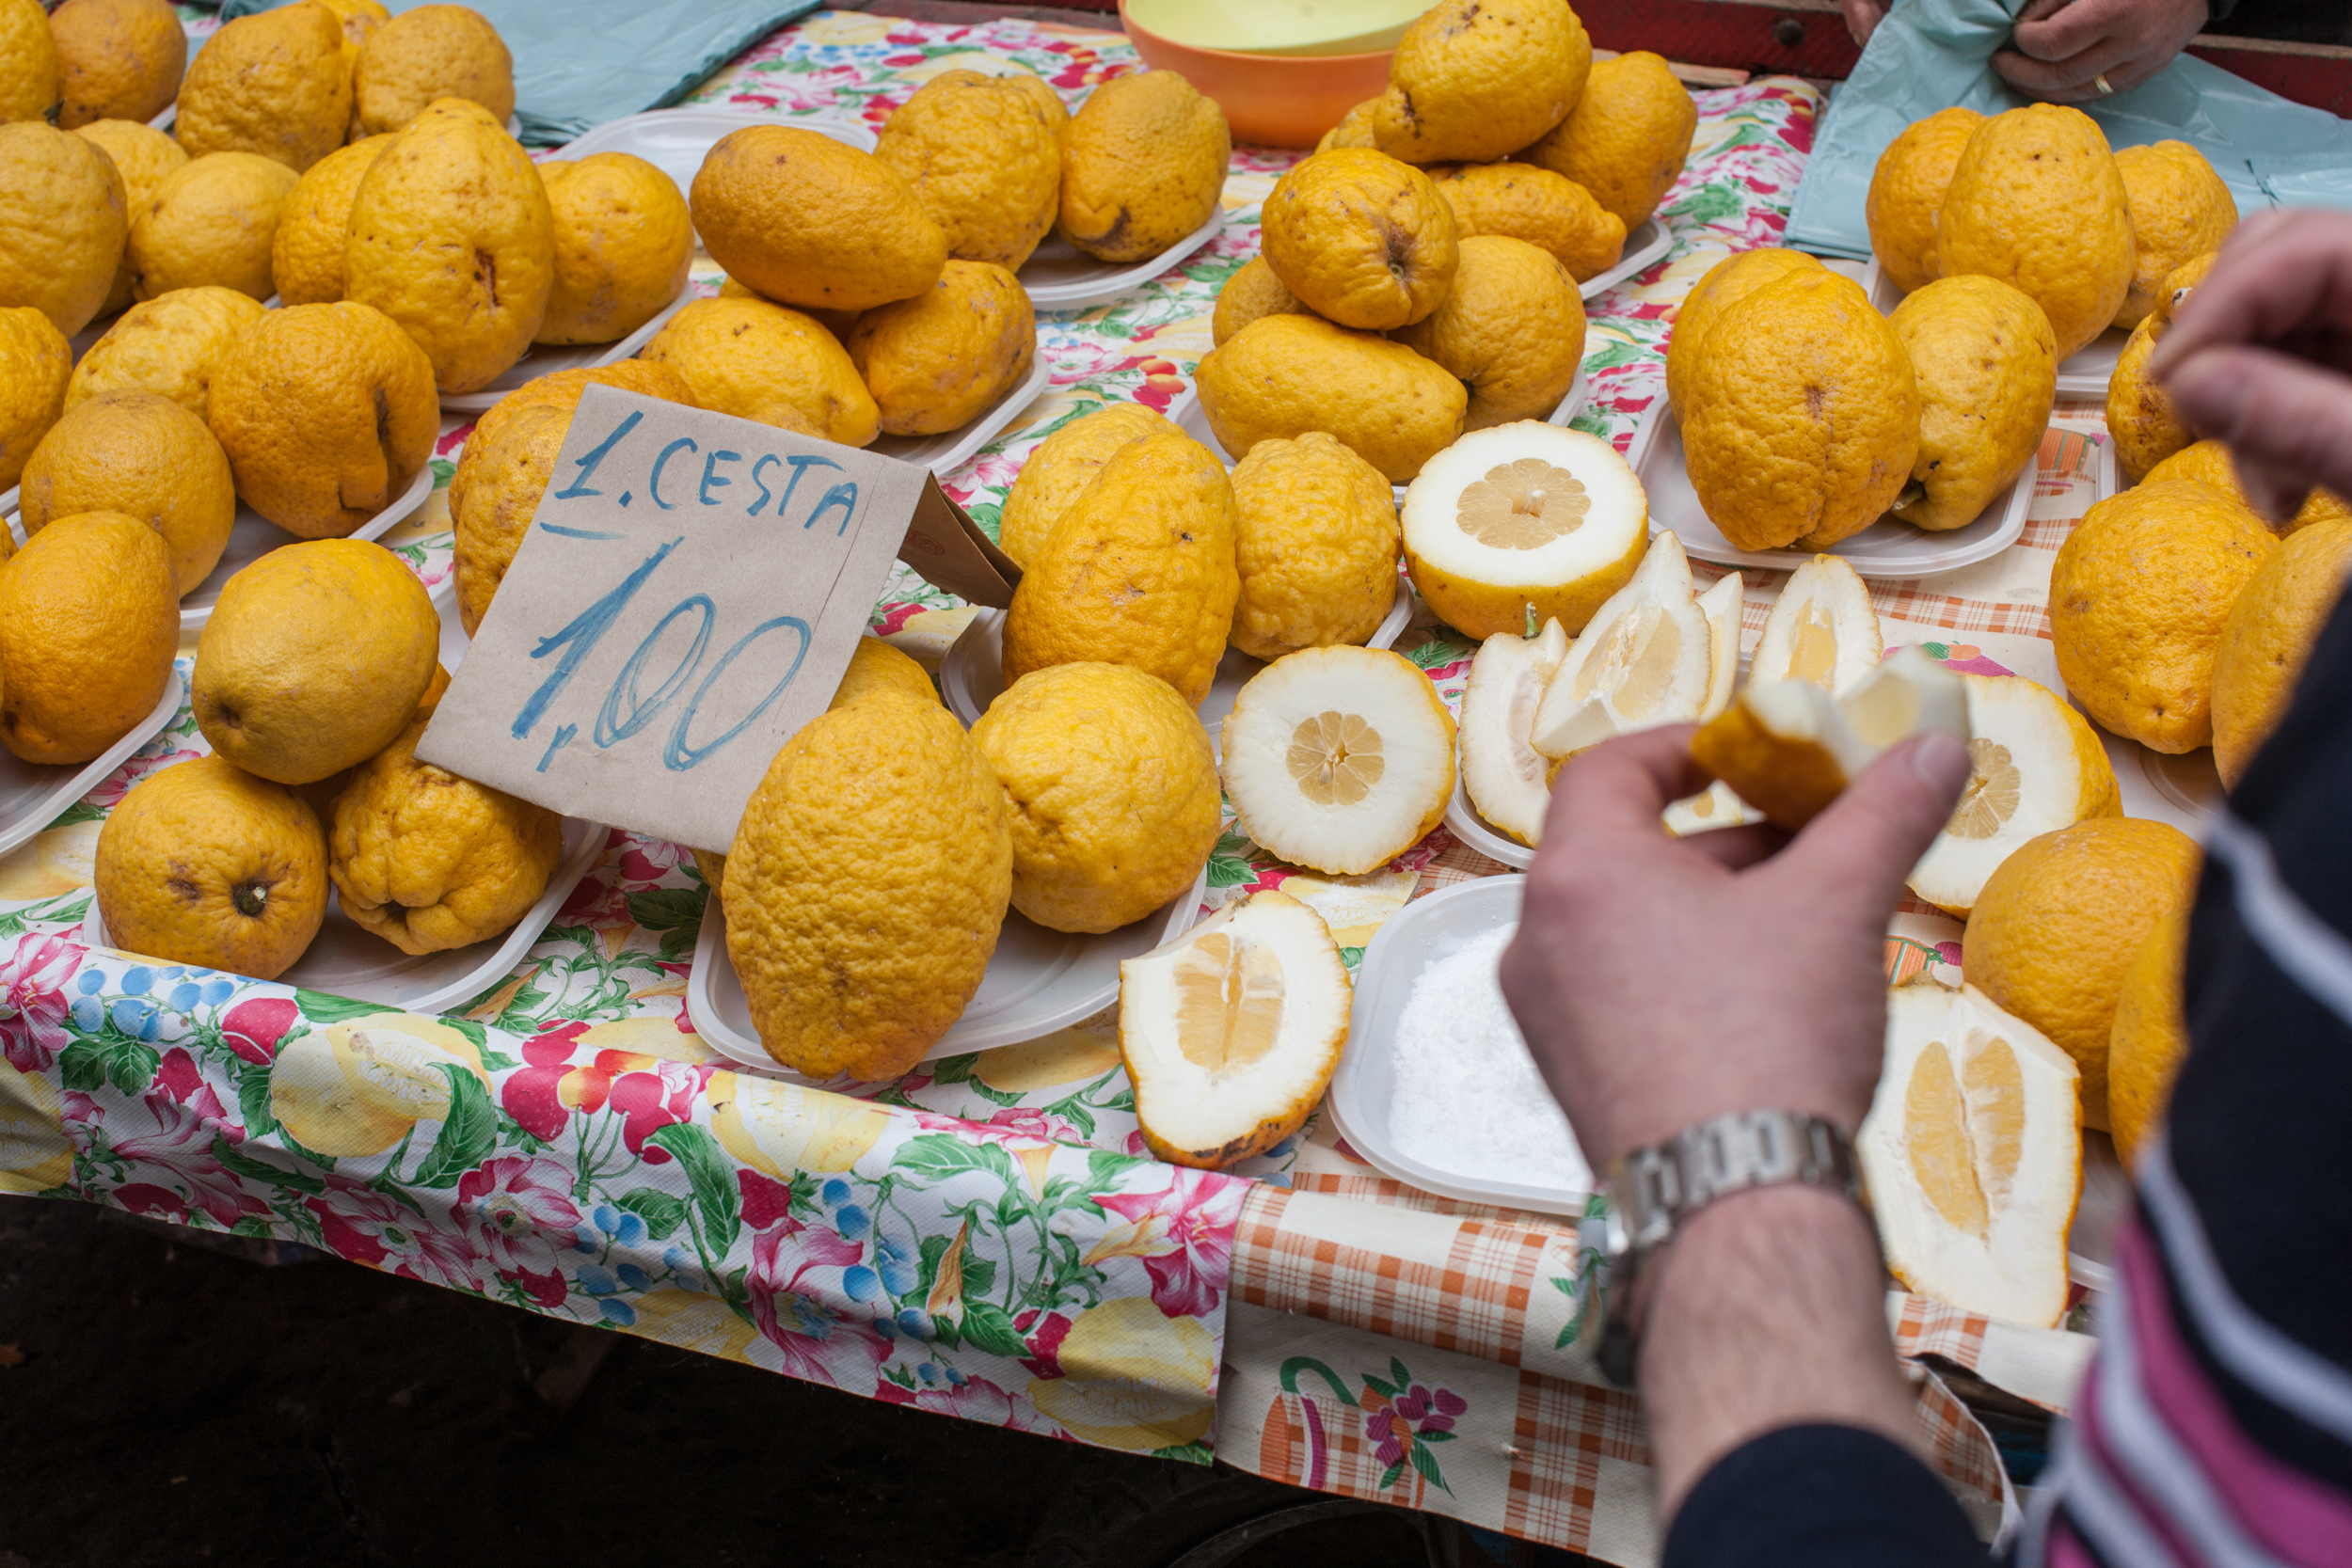 Citrons for sale